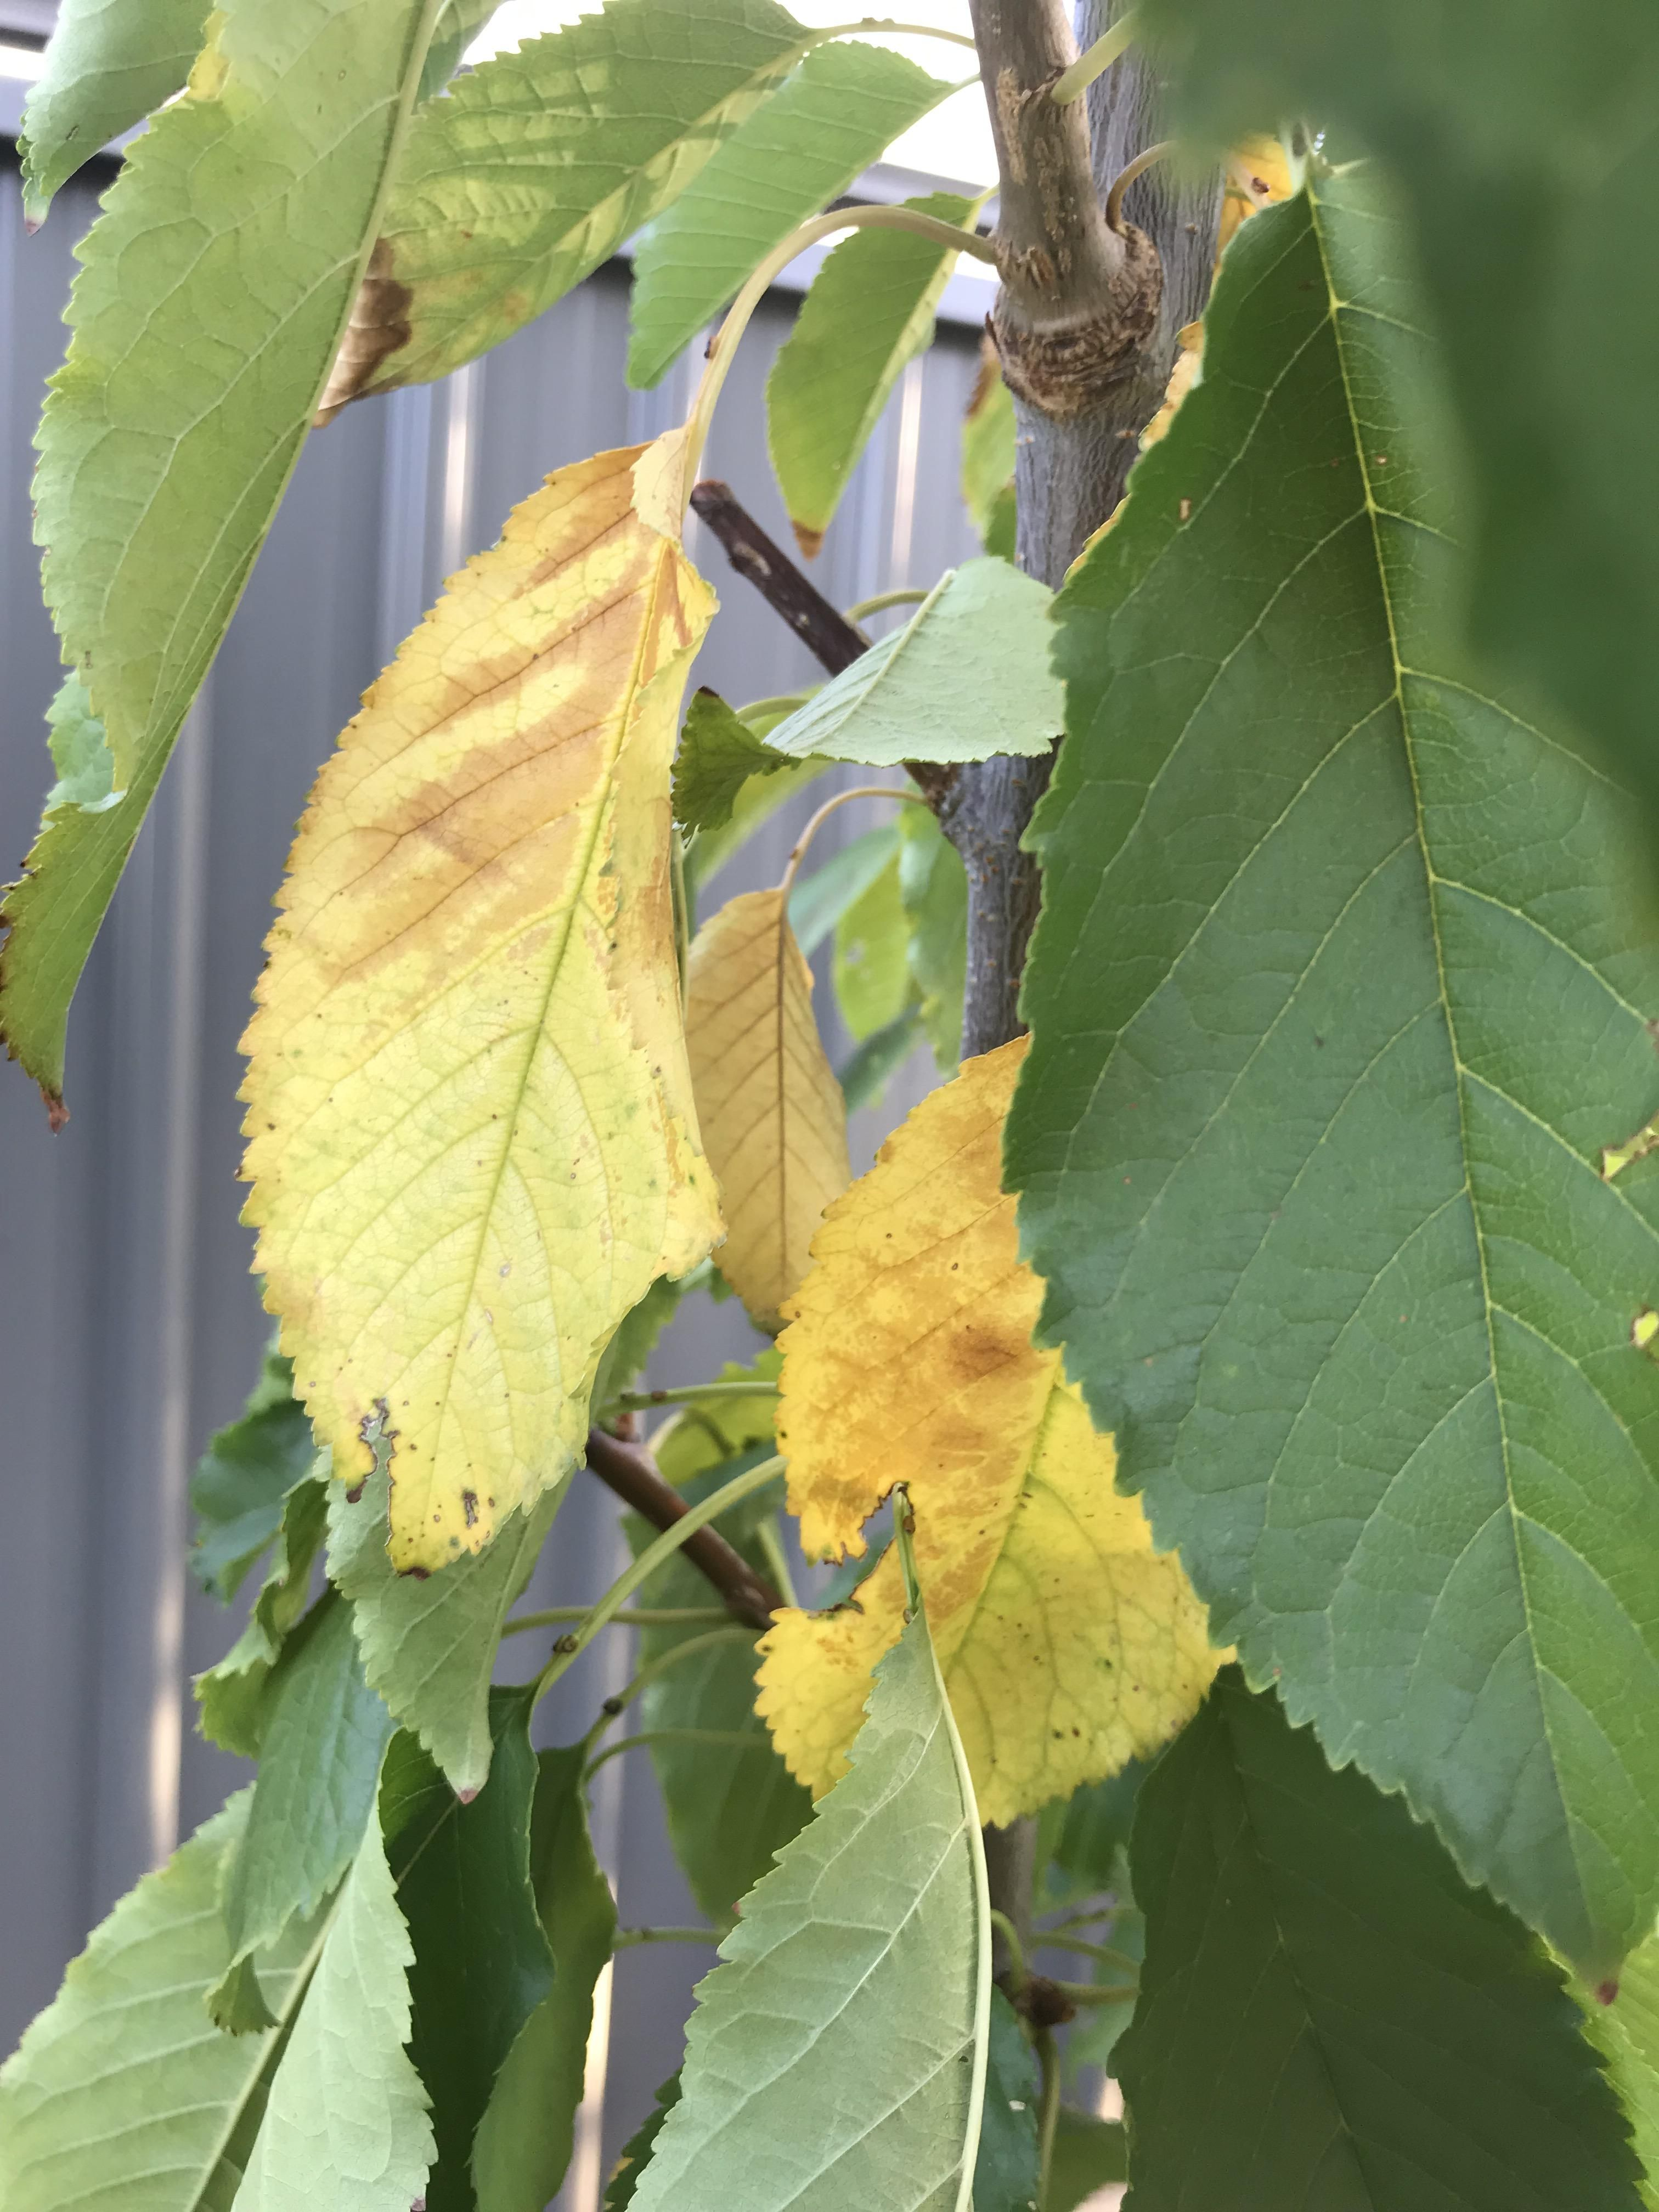 Cherry Trees With Yellowing Leaves Its Been A V Hot Summer In South Australia Weve Had Many Many Days Over 40 Yellow Leaves Flowering Cherry Tree Cherry Tree